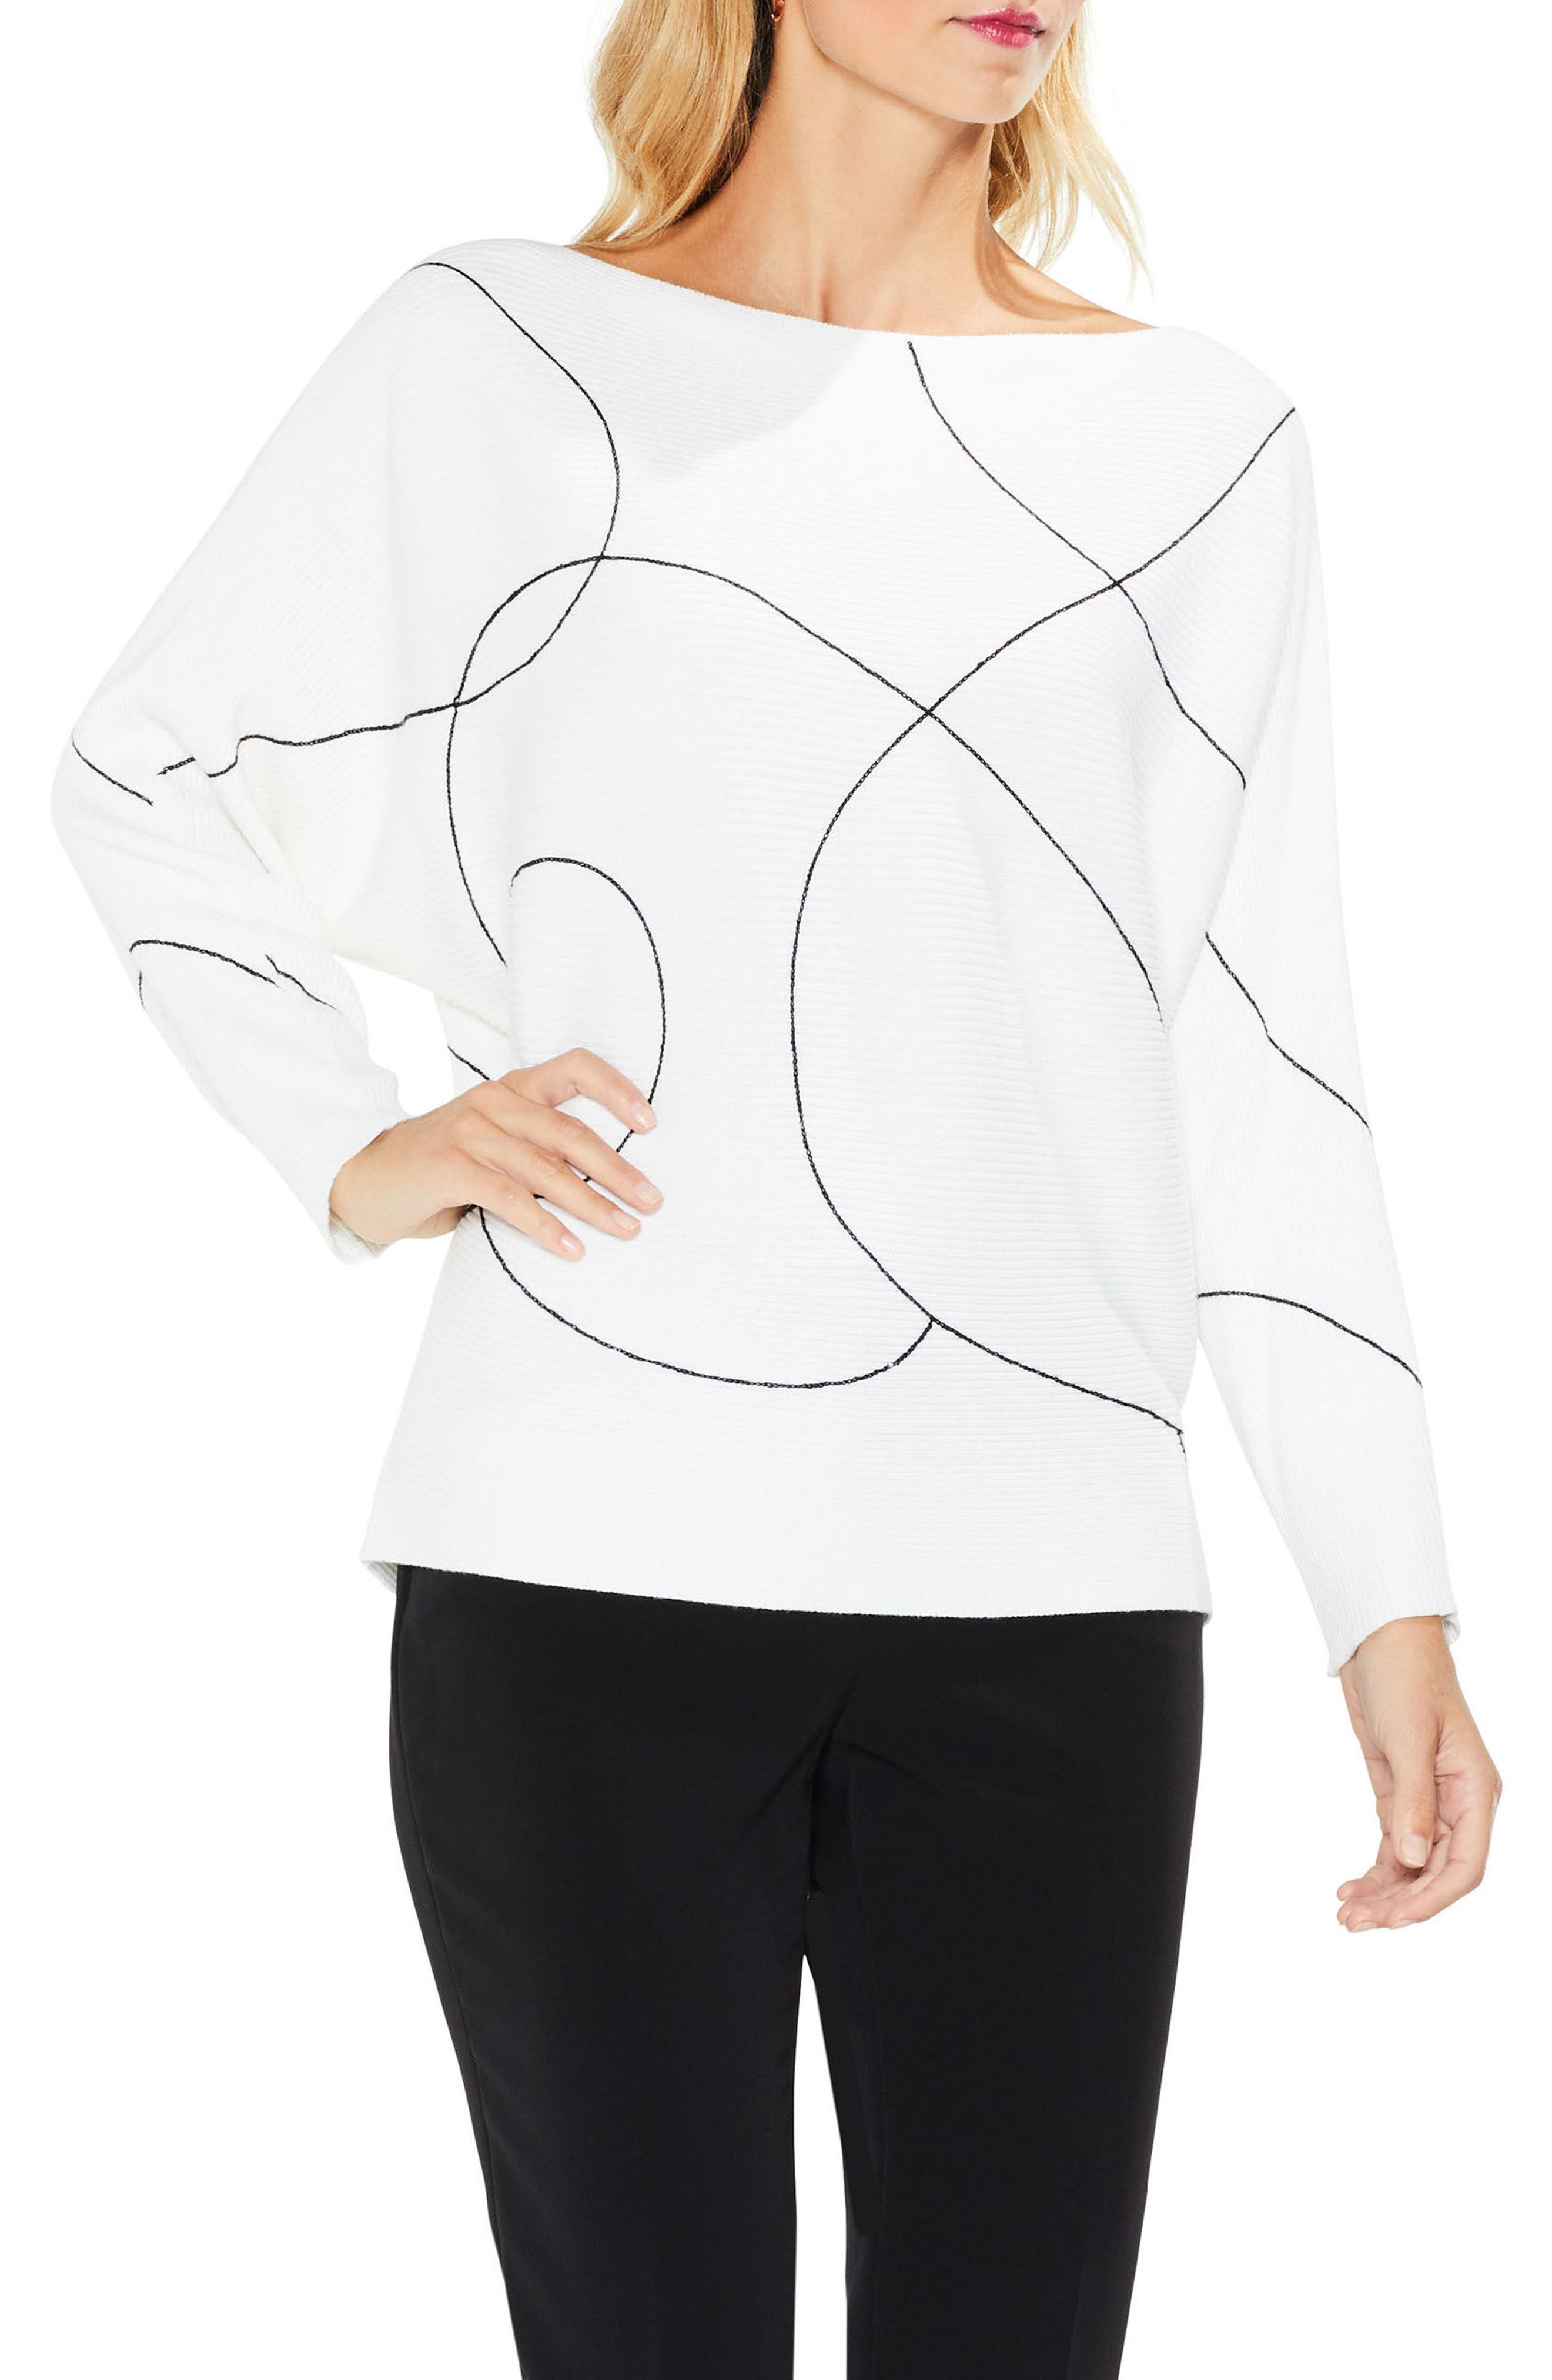 Alternate Image 1 Selected - Vince Camuto Ink Swirl Ribbed Sweater (Regular & Petite)